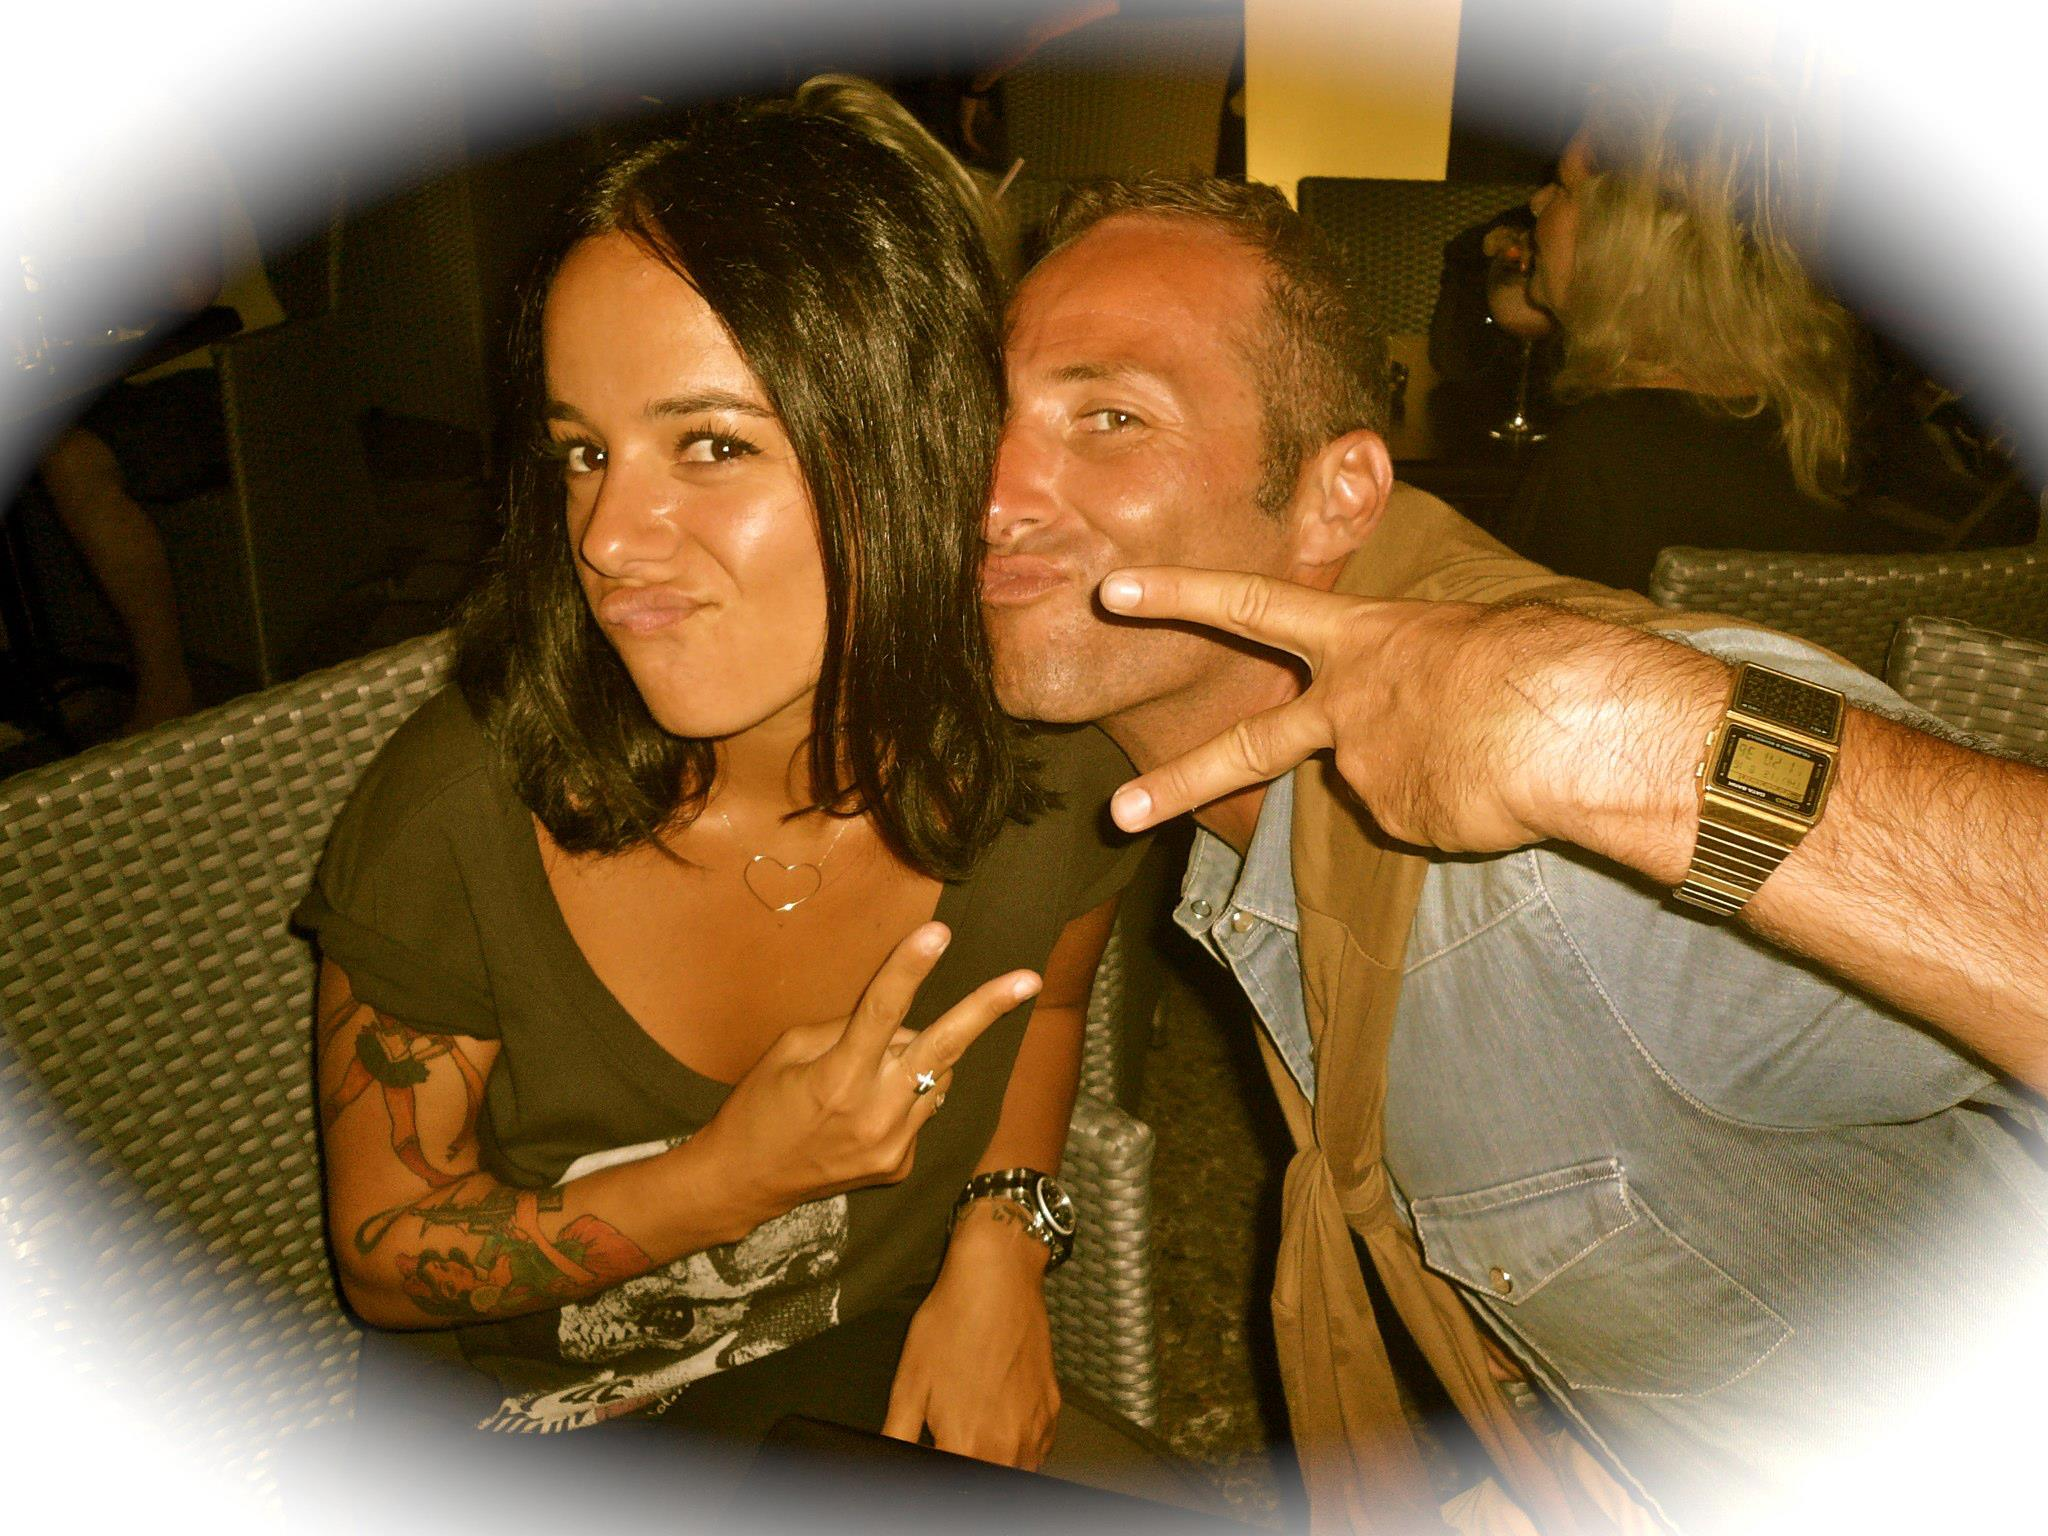 Alizée and Pierre-Antoine at the concert of Pussycat Kill Kill in Ajaccio on 16th of August 2012